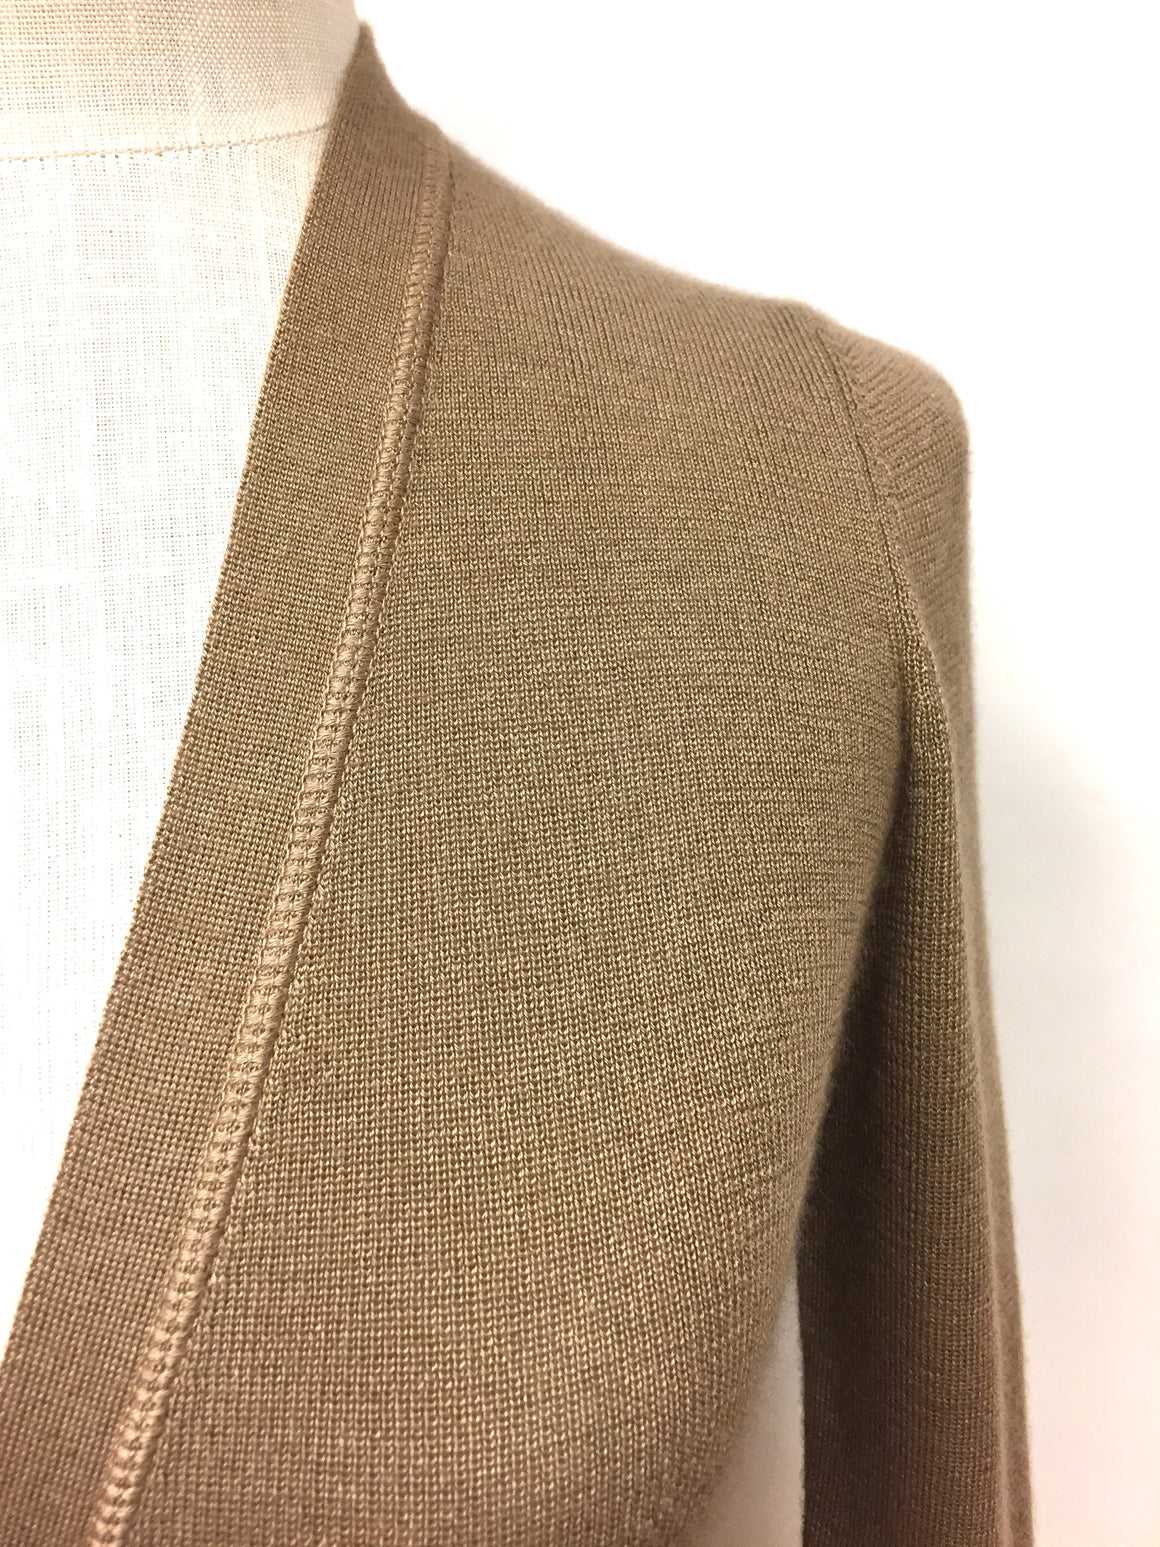 PRADA Tan Cashmere & Silk V-Neck Cardigan Sweater Size: M